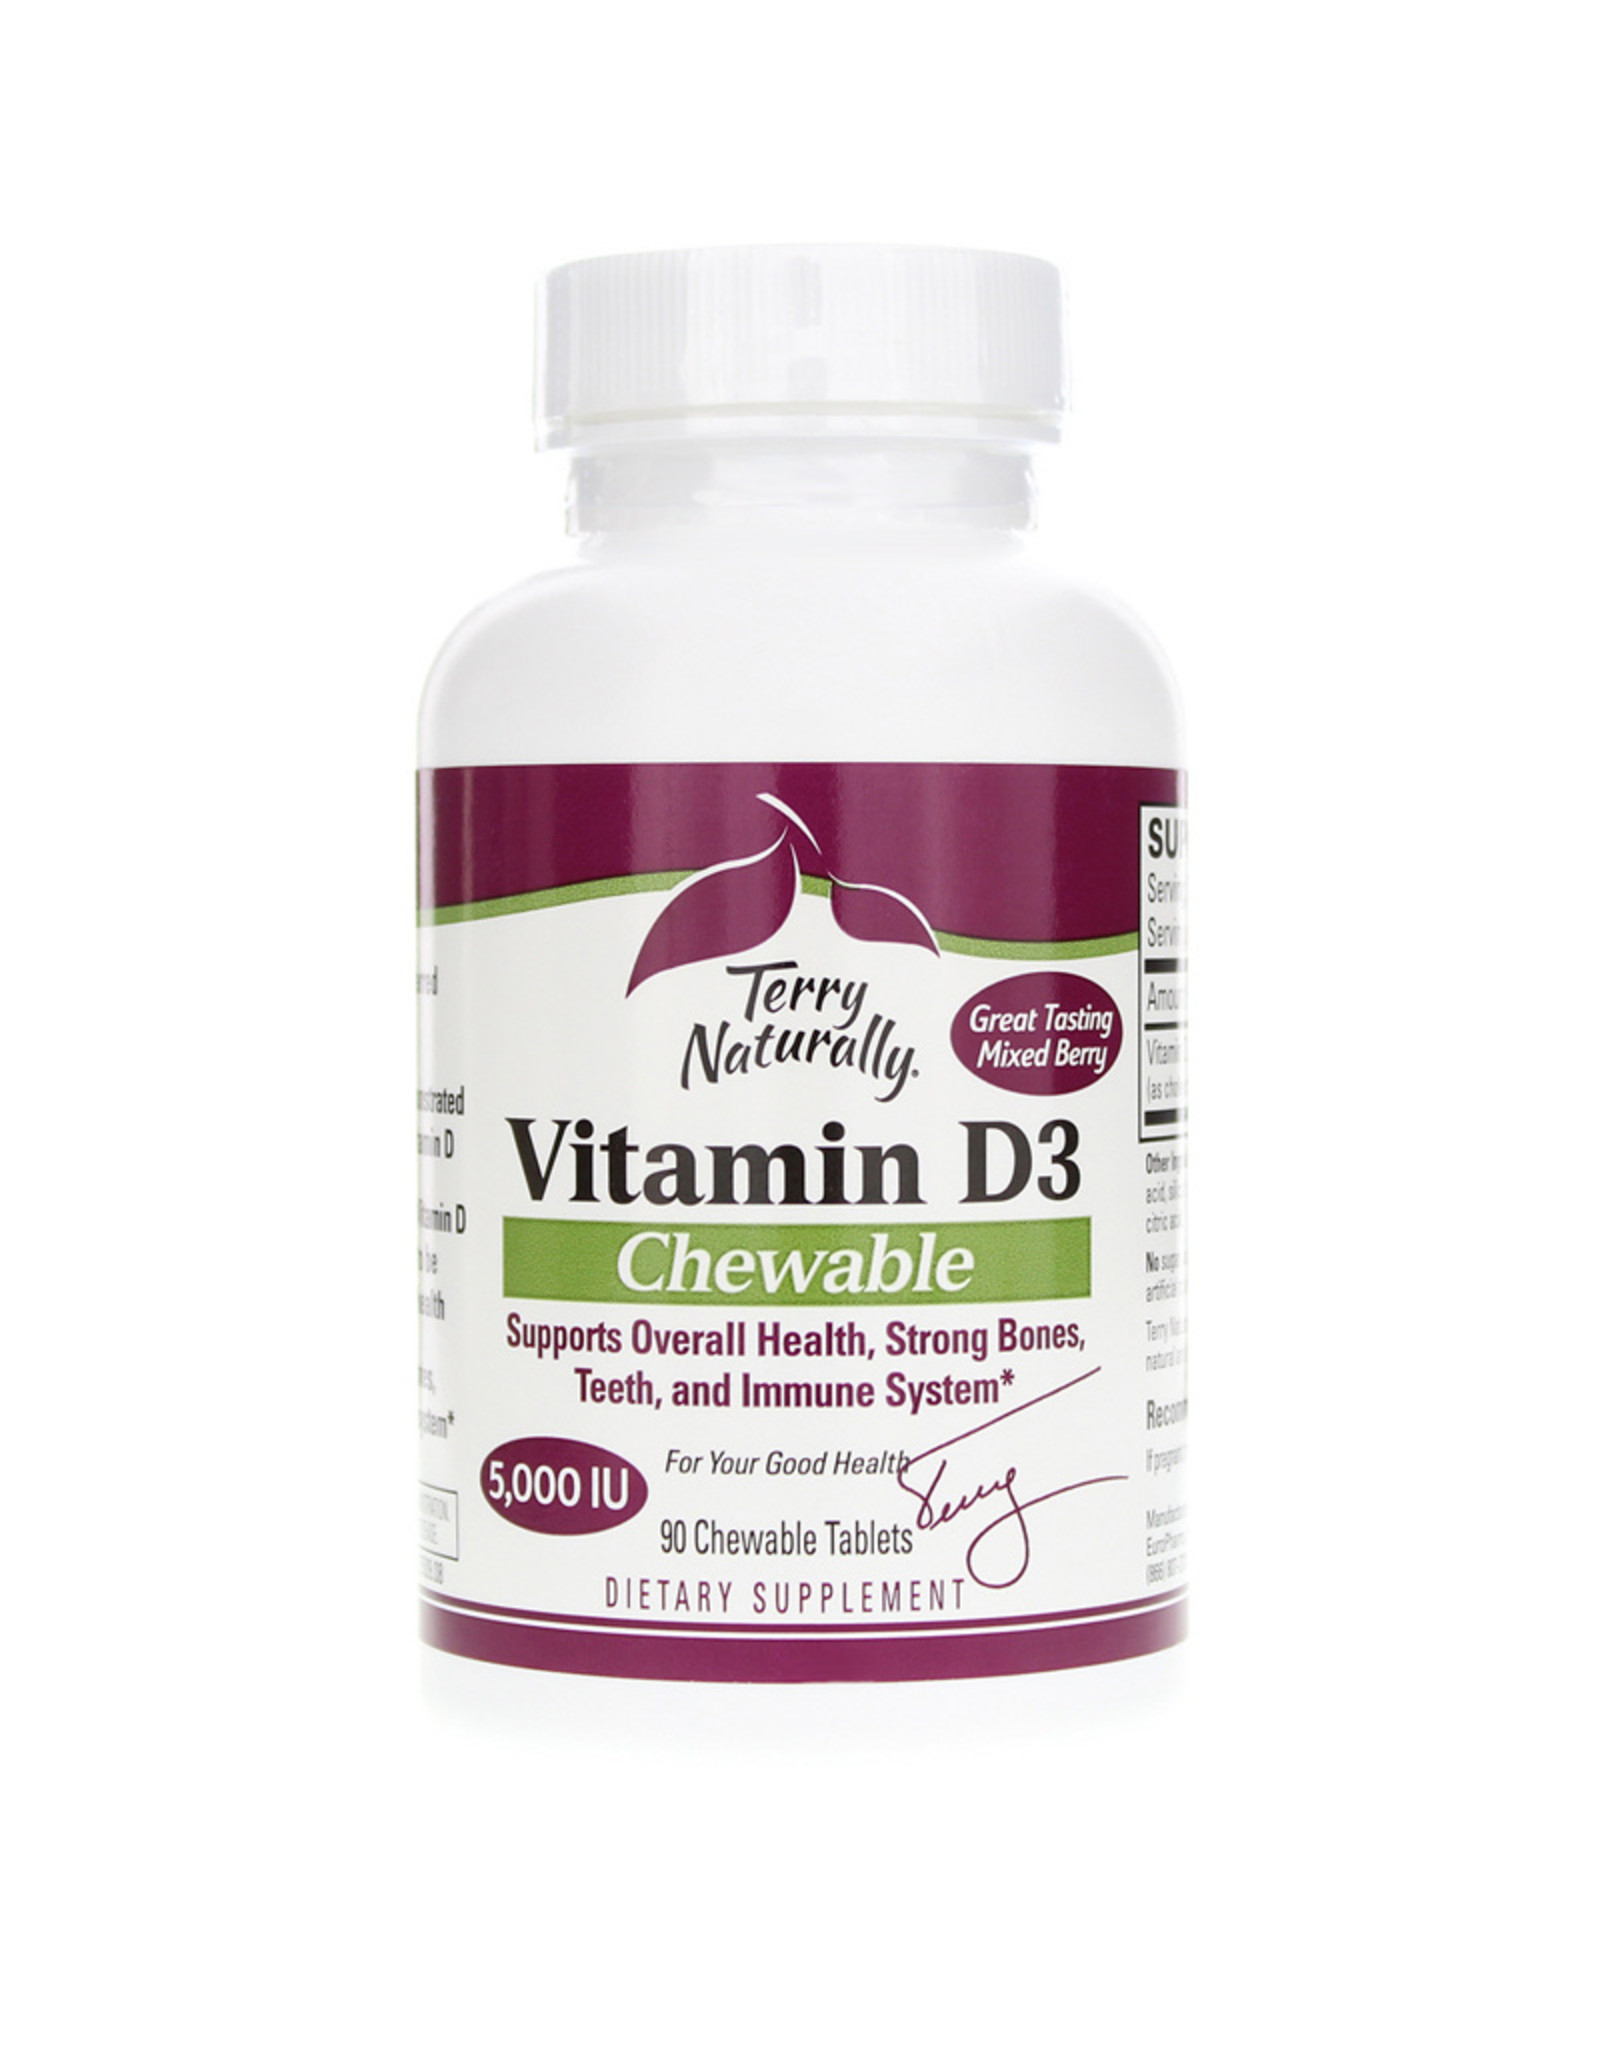 Terry Naturally Vitamin D3 Chewable Mixed Berry 90ct